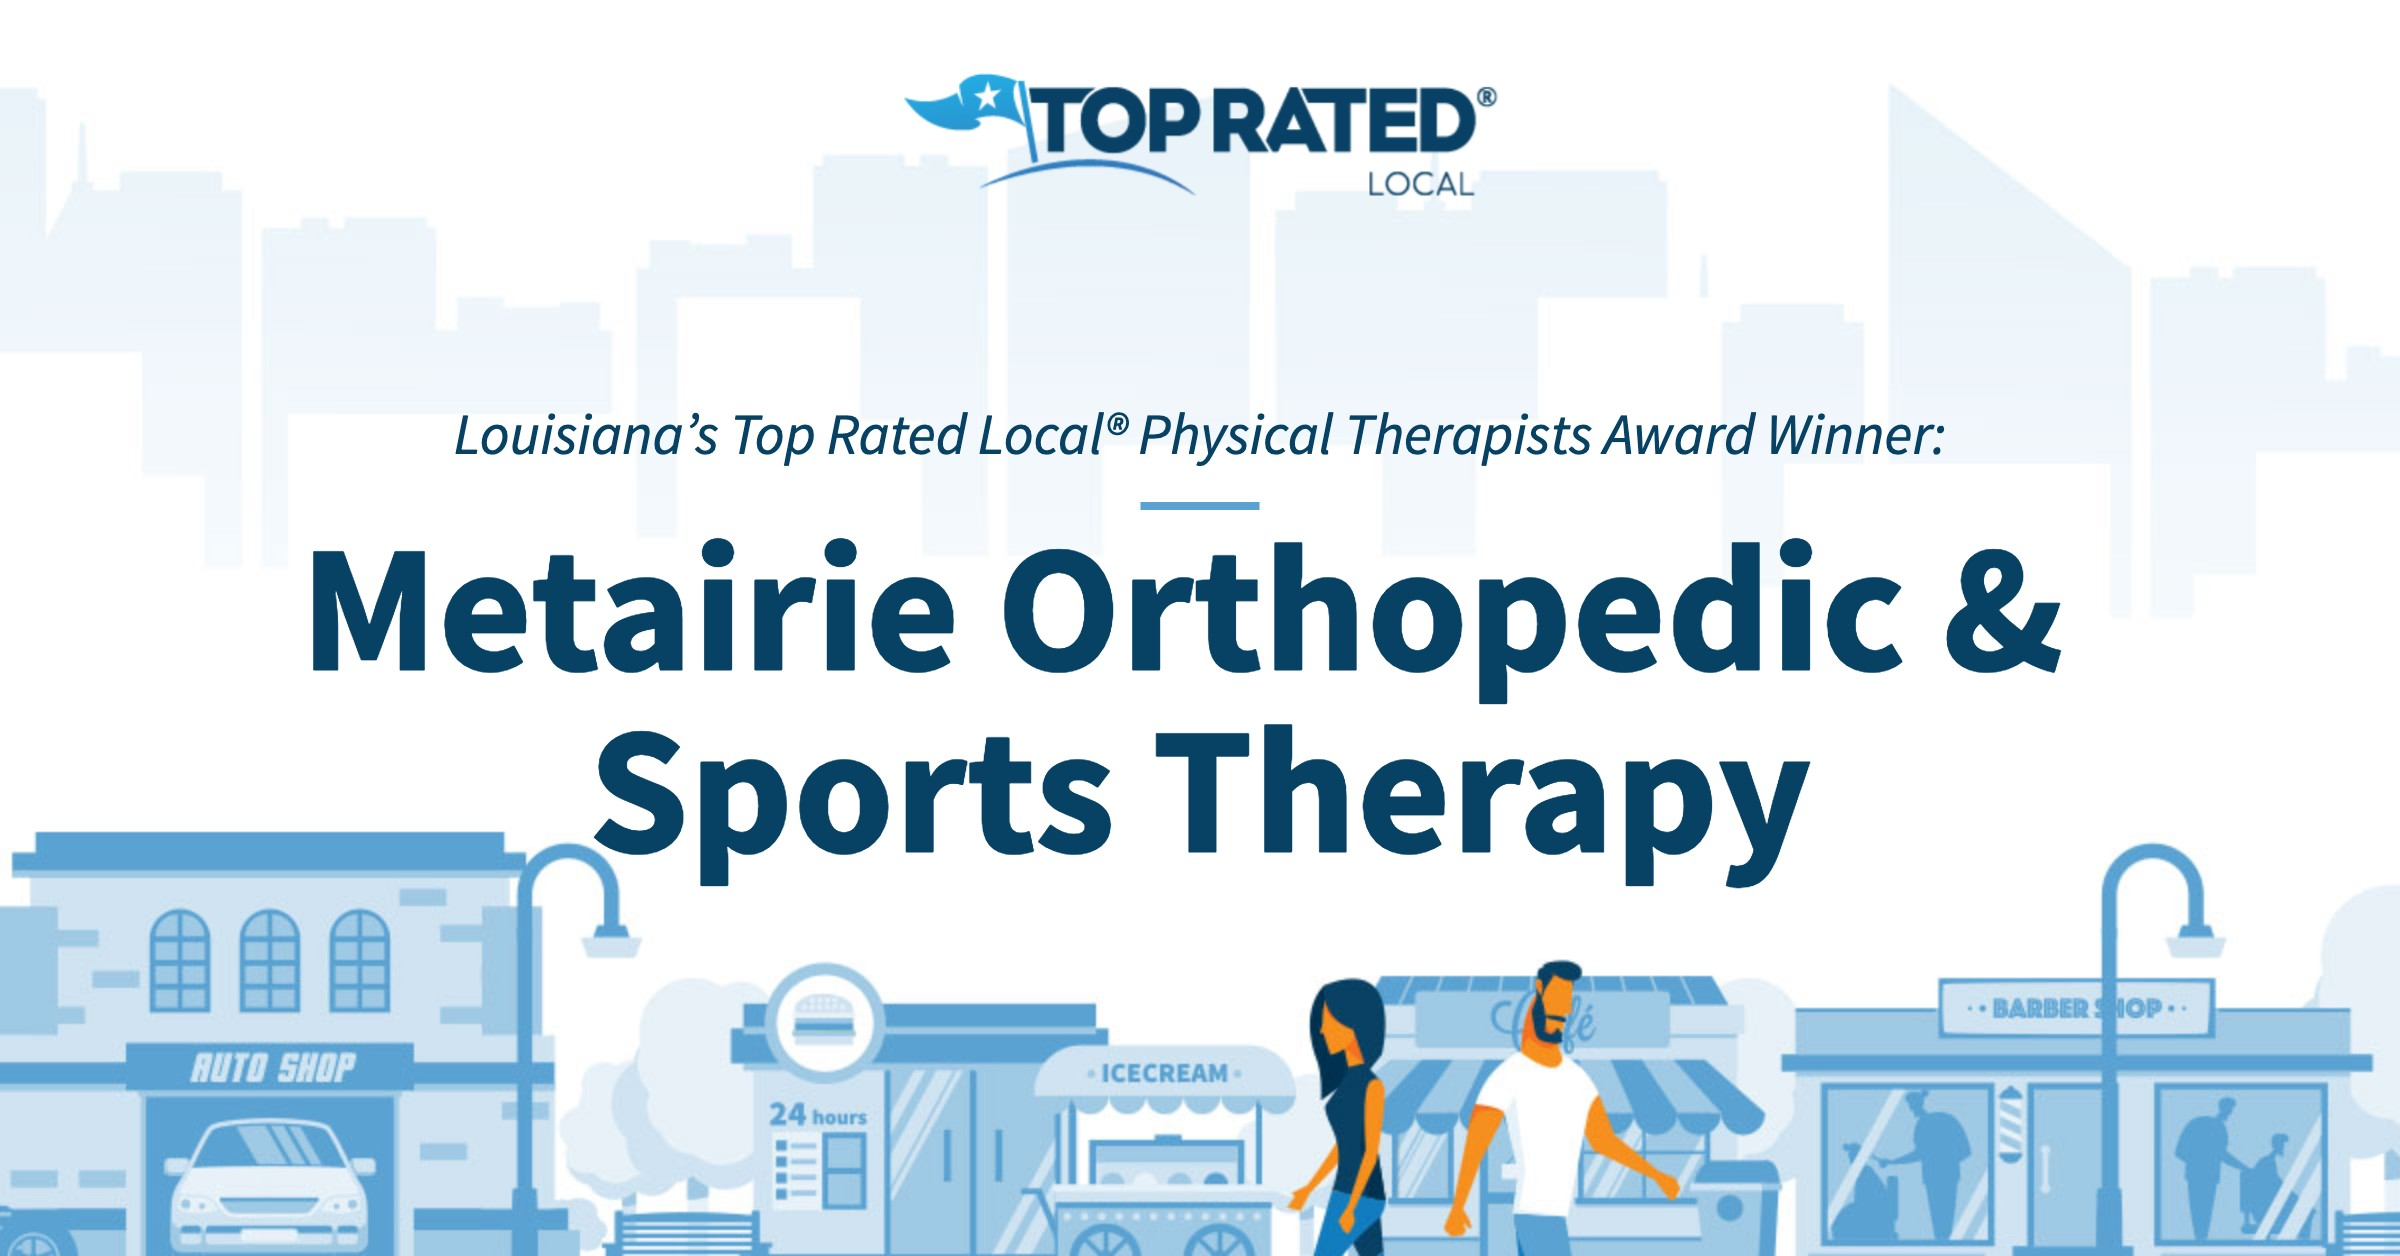 Louisiana's Top Rated Local® Physical Therapists Award Winner: Metairie Orthopedic & Sports Therapy